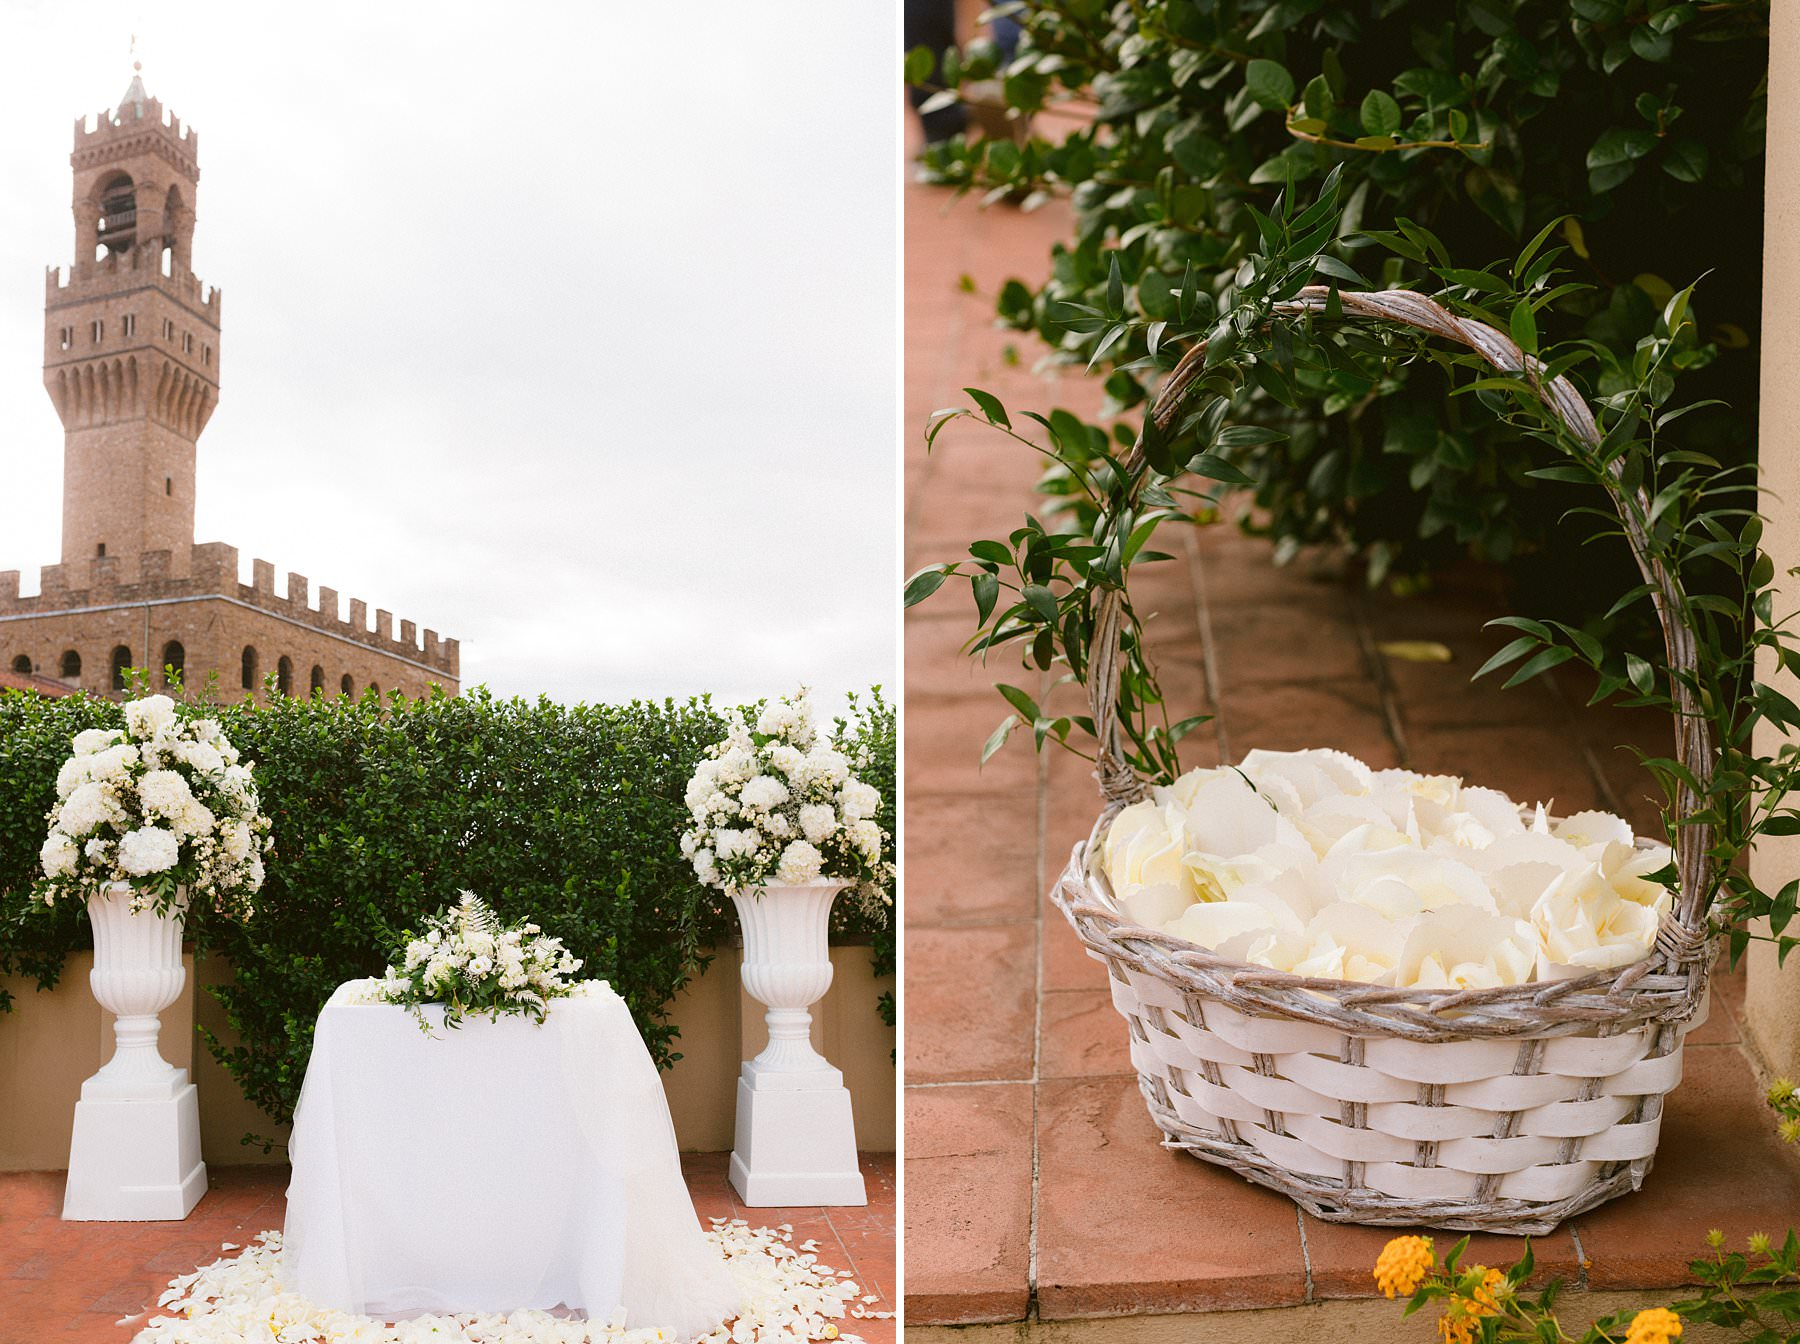 Intimate exquisite wedding in the heart of Florence, Italy. Gorgeous real wedding ceremony decors at Palazzo Gondi, one of the most renowned Renaissance palaces in Florence, and it's open to guests only on special occasions. A real hidden treasure located in the very heart of the historical center, next to Palazzo della Signoria. It's no surprise that the terrace – that hosted the wedding ceremony – offers an incredible view of the Duomo and Palazzo Vecchio